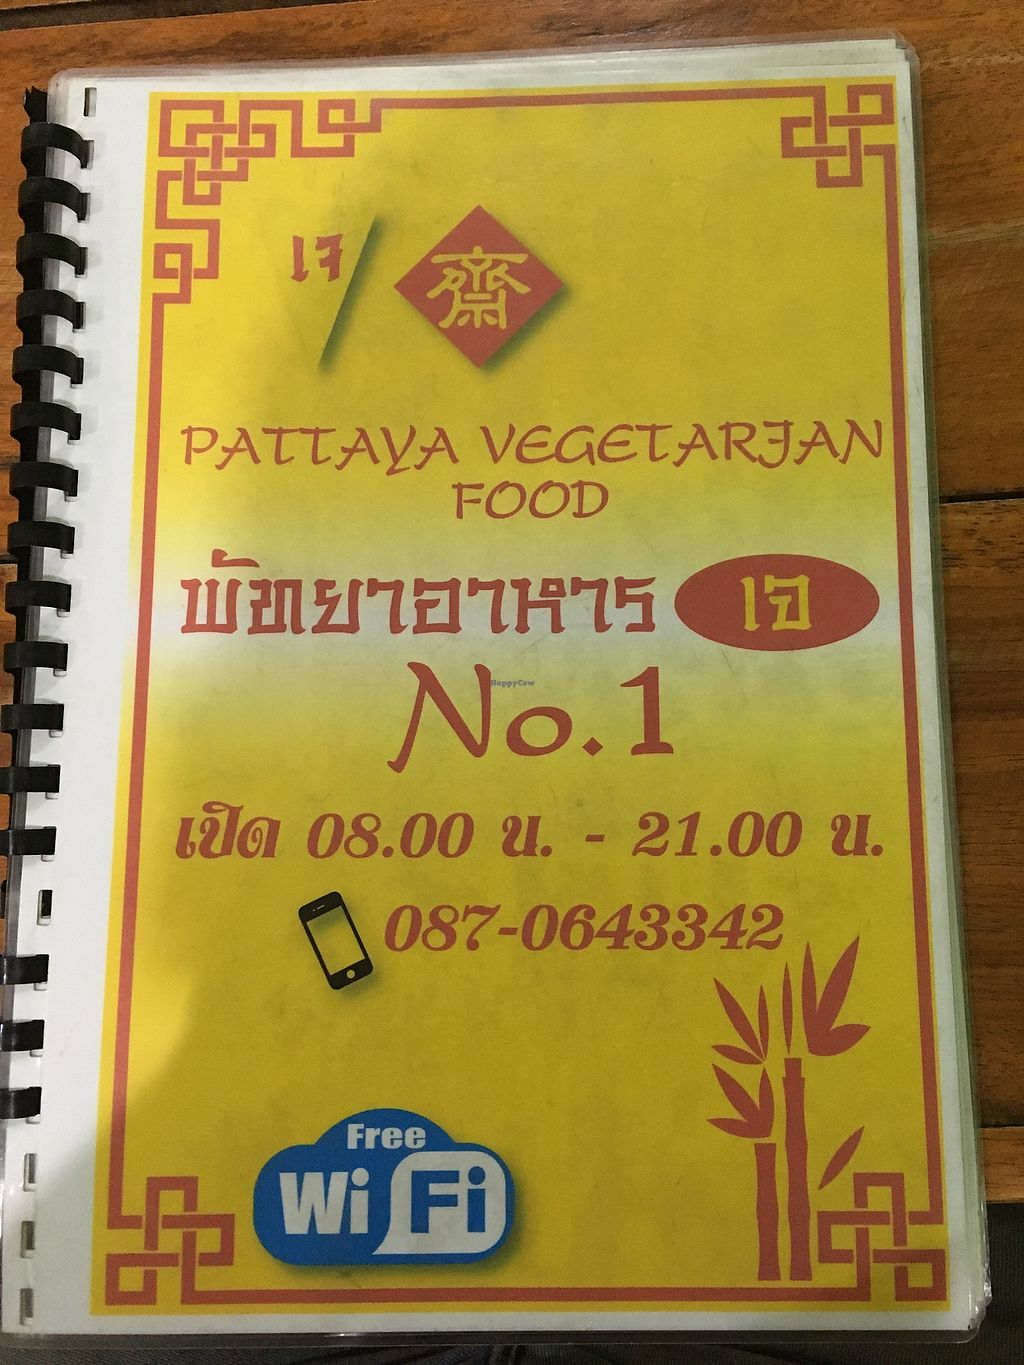 """Photo of Pattaya Vegetarian Food  by <a href=""""/members/profile/martiin"""">martiin</a> <br/>Menu <br/> October 13, 2017  - <a href='/contact/abuse/image/21688/314812'>Report</a>"""